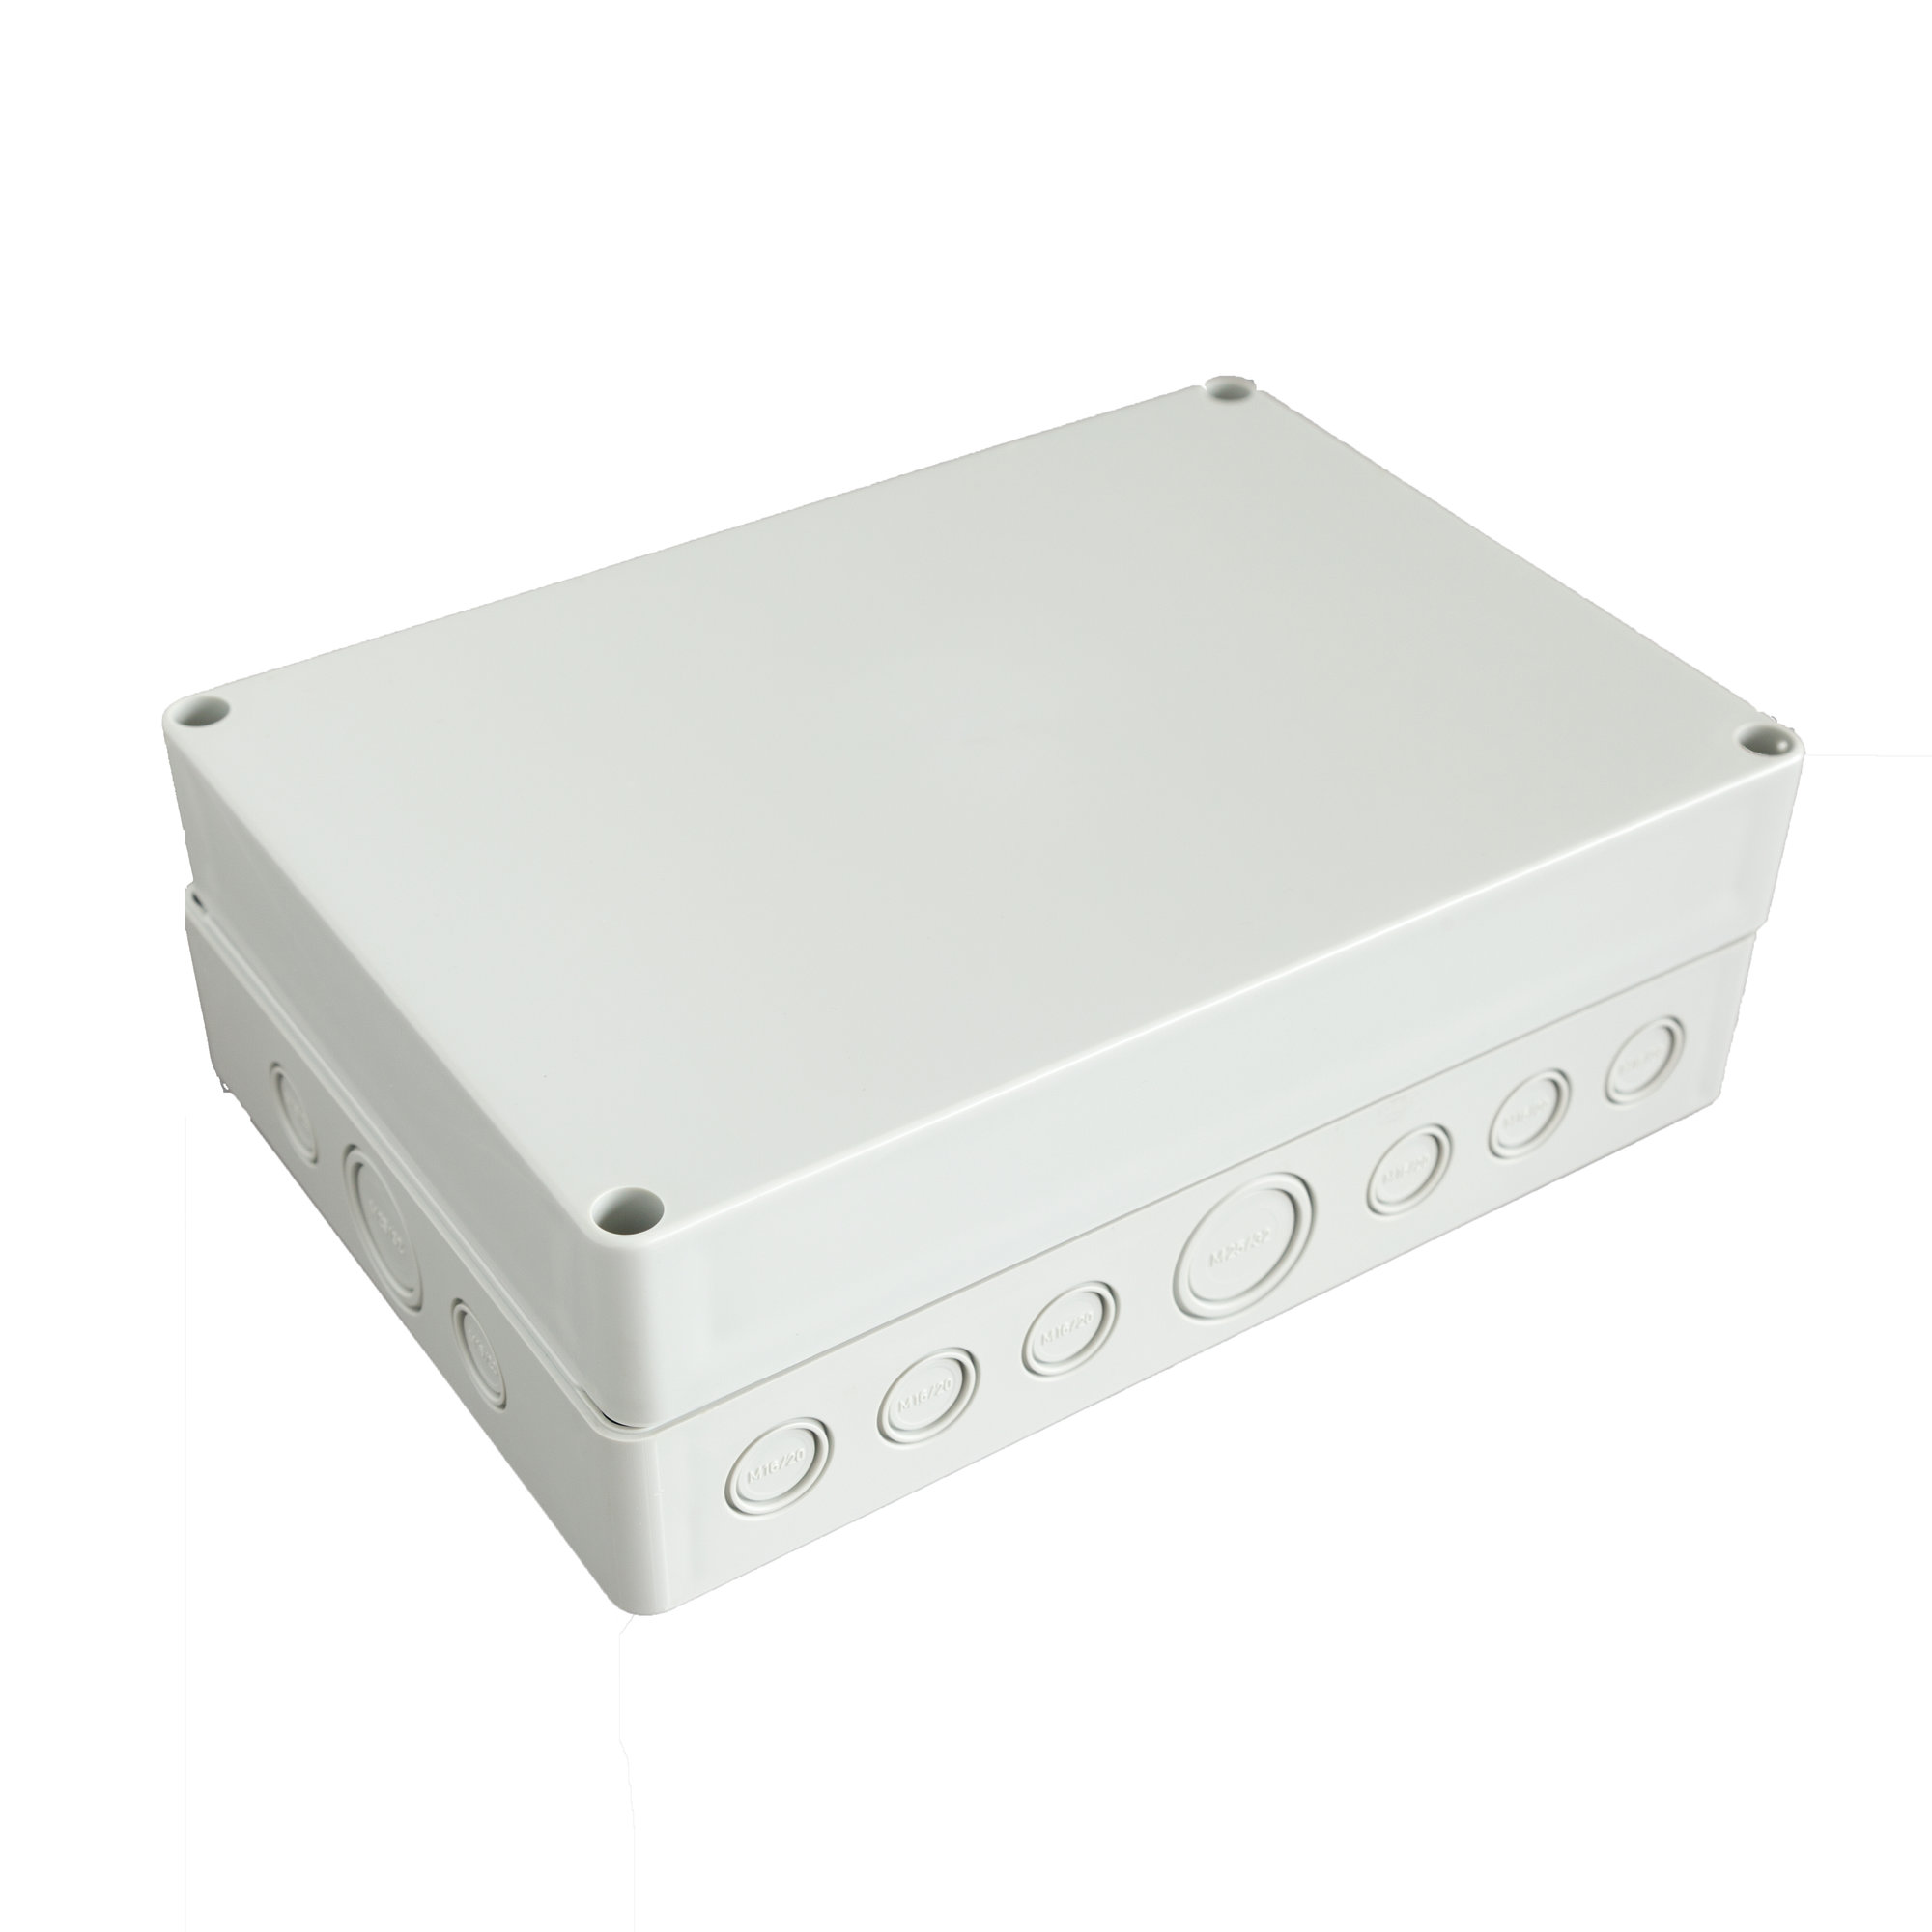 IP66 enclosure for Driver Large